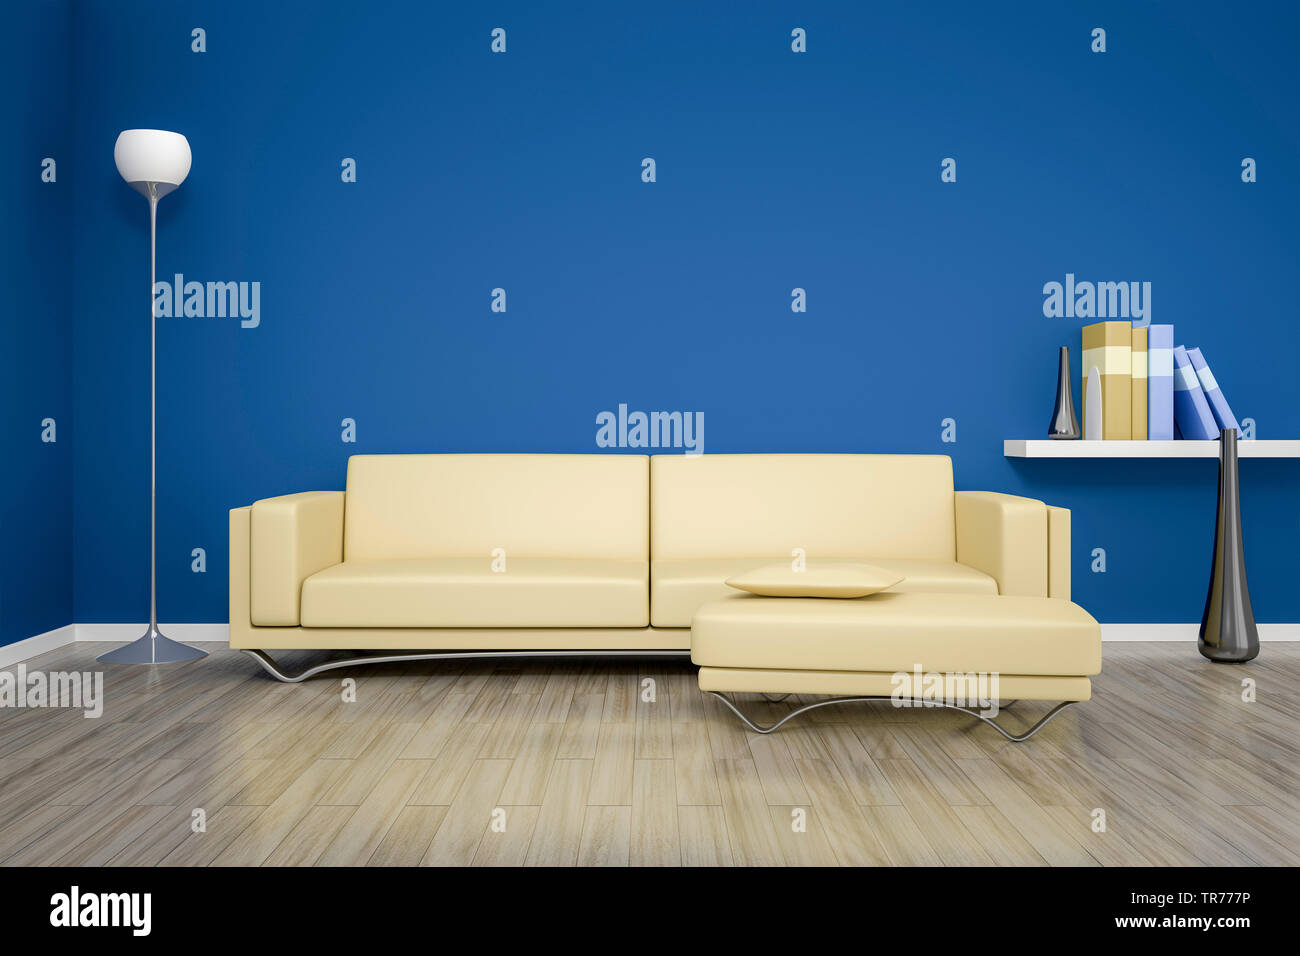 3d Computer Graphic Interior Design With Modern Leather Sofa In Beige Color Against A Blue Wall Stock Photo Alamy